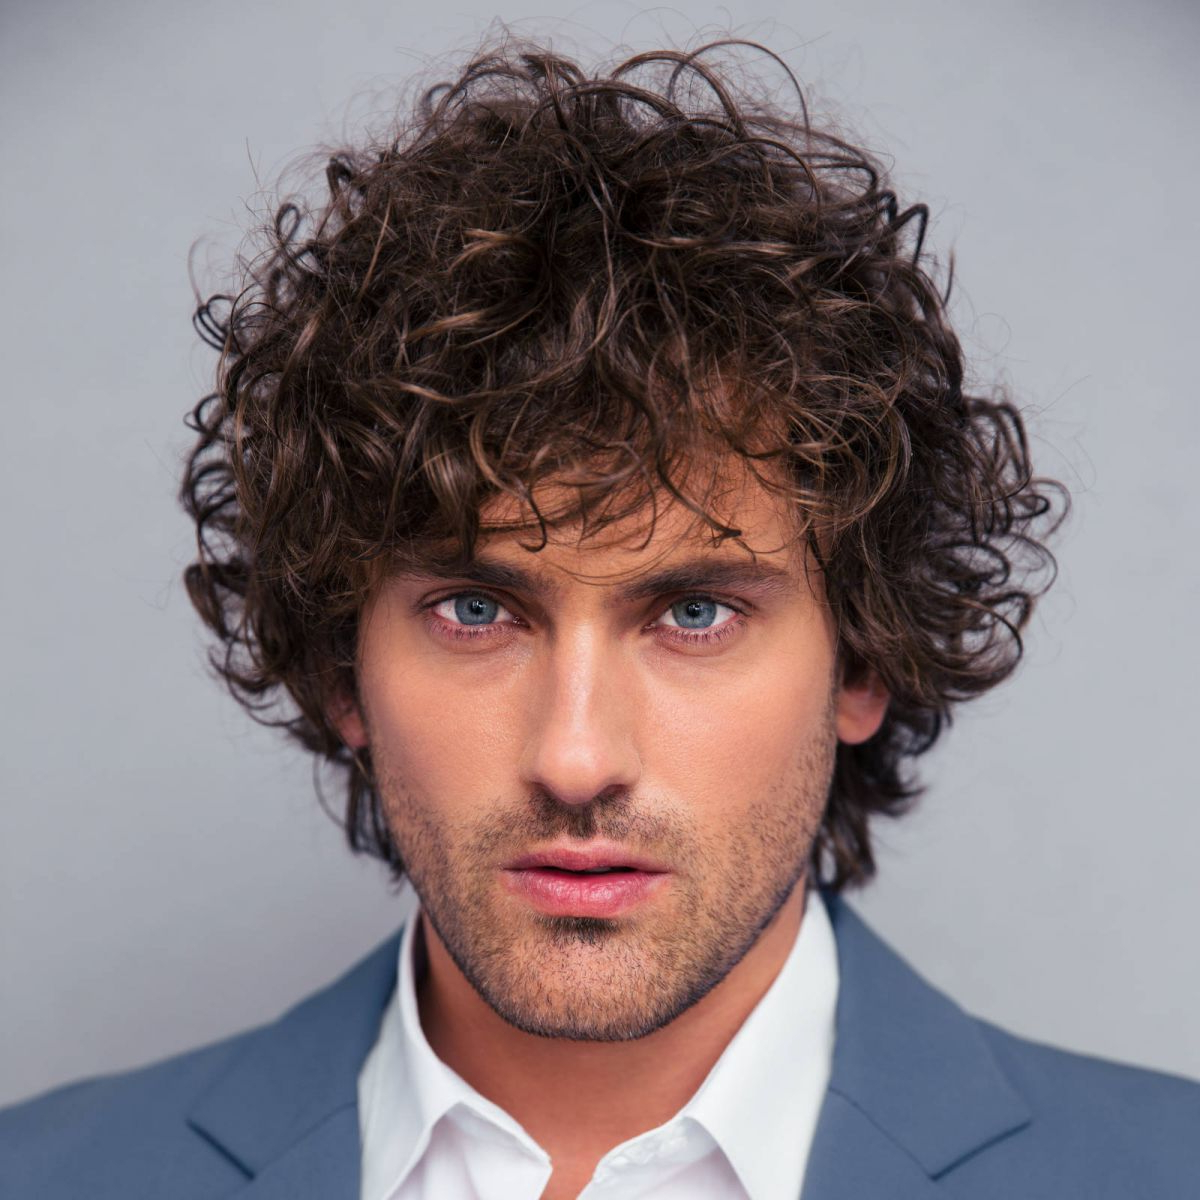 40 Modern Men's Hairstyles For Curly Hair (that Will Change Your Look) With Regard To Short Messy Curly Hairstyles (View 3 of 20)